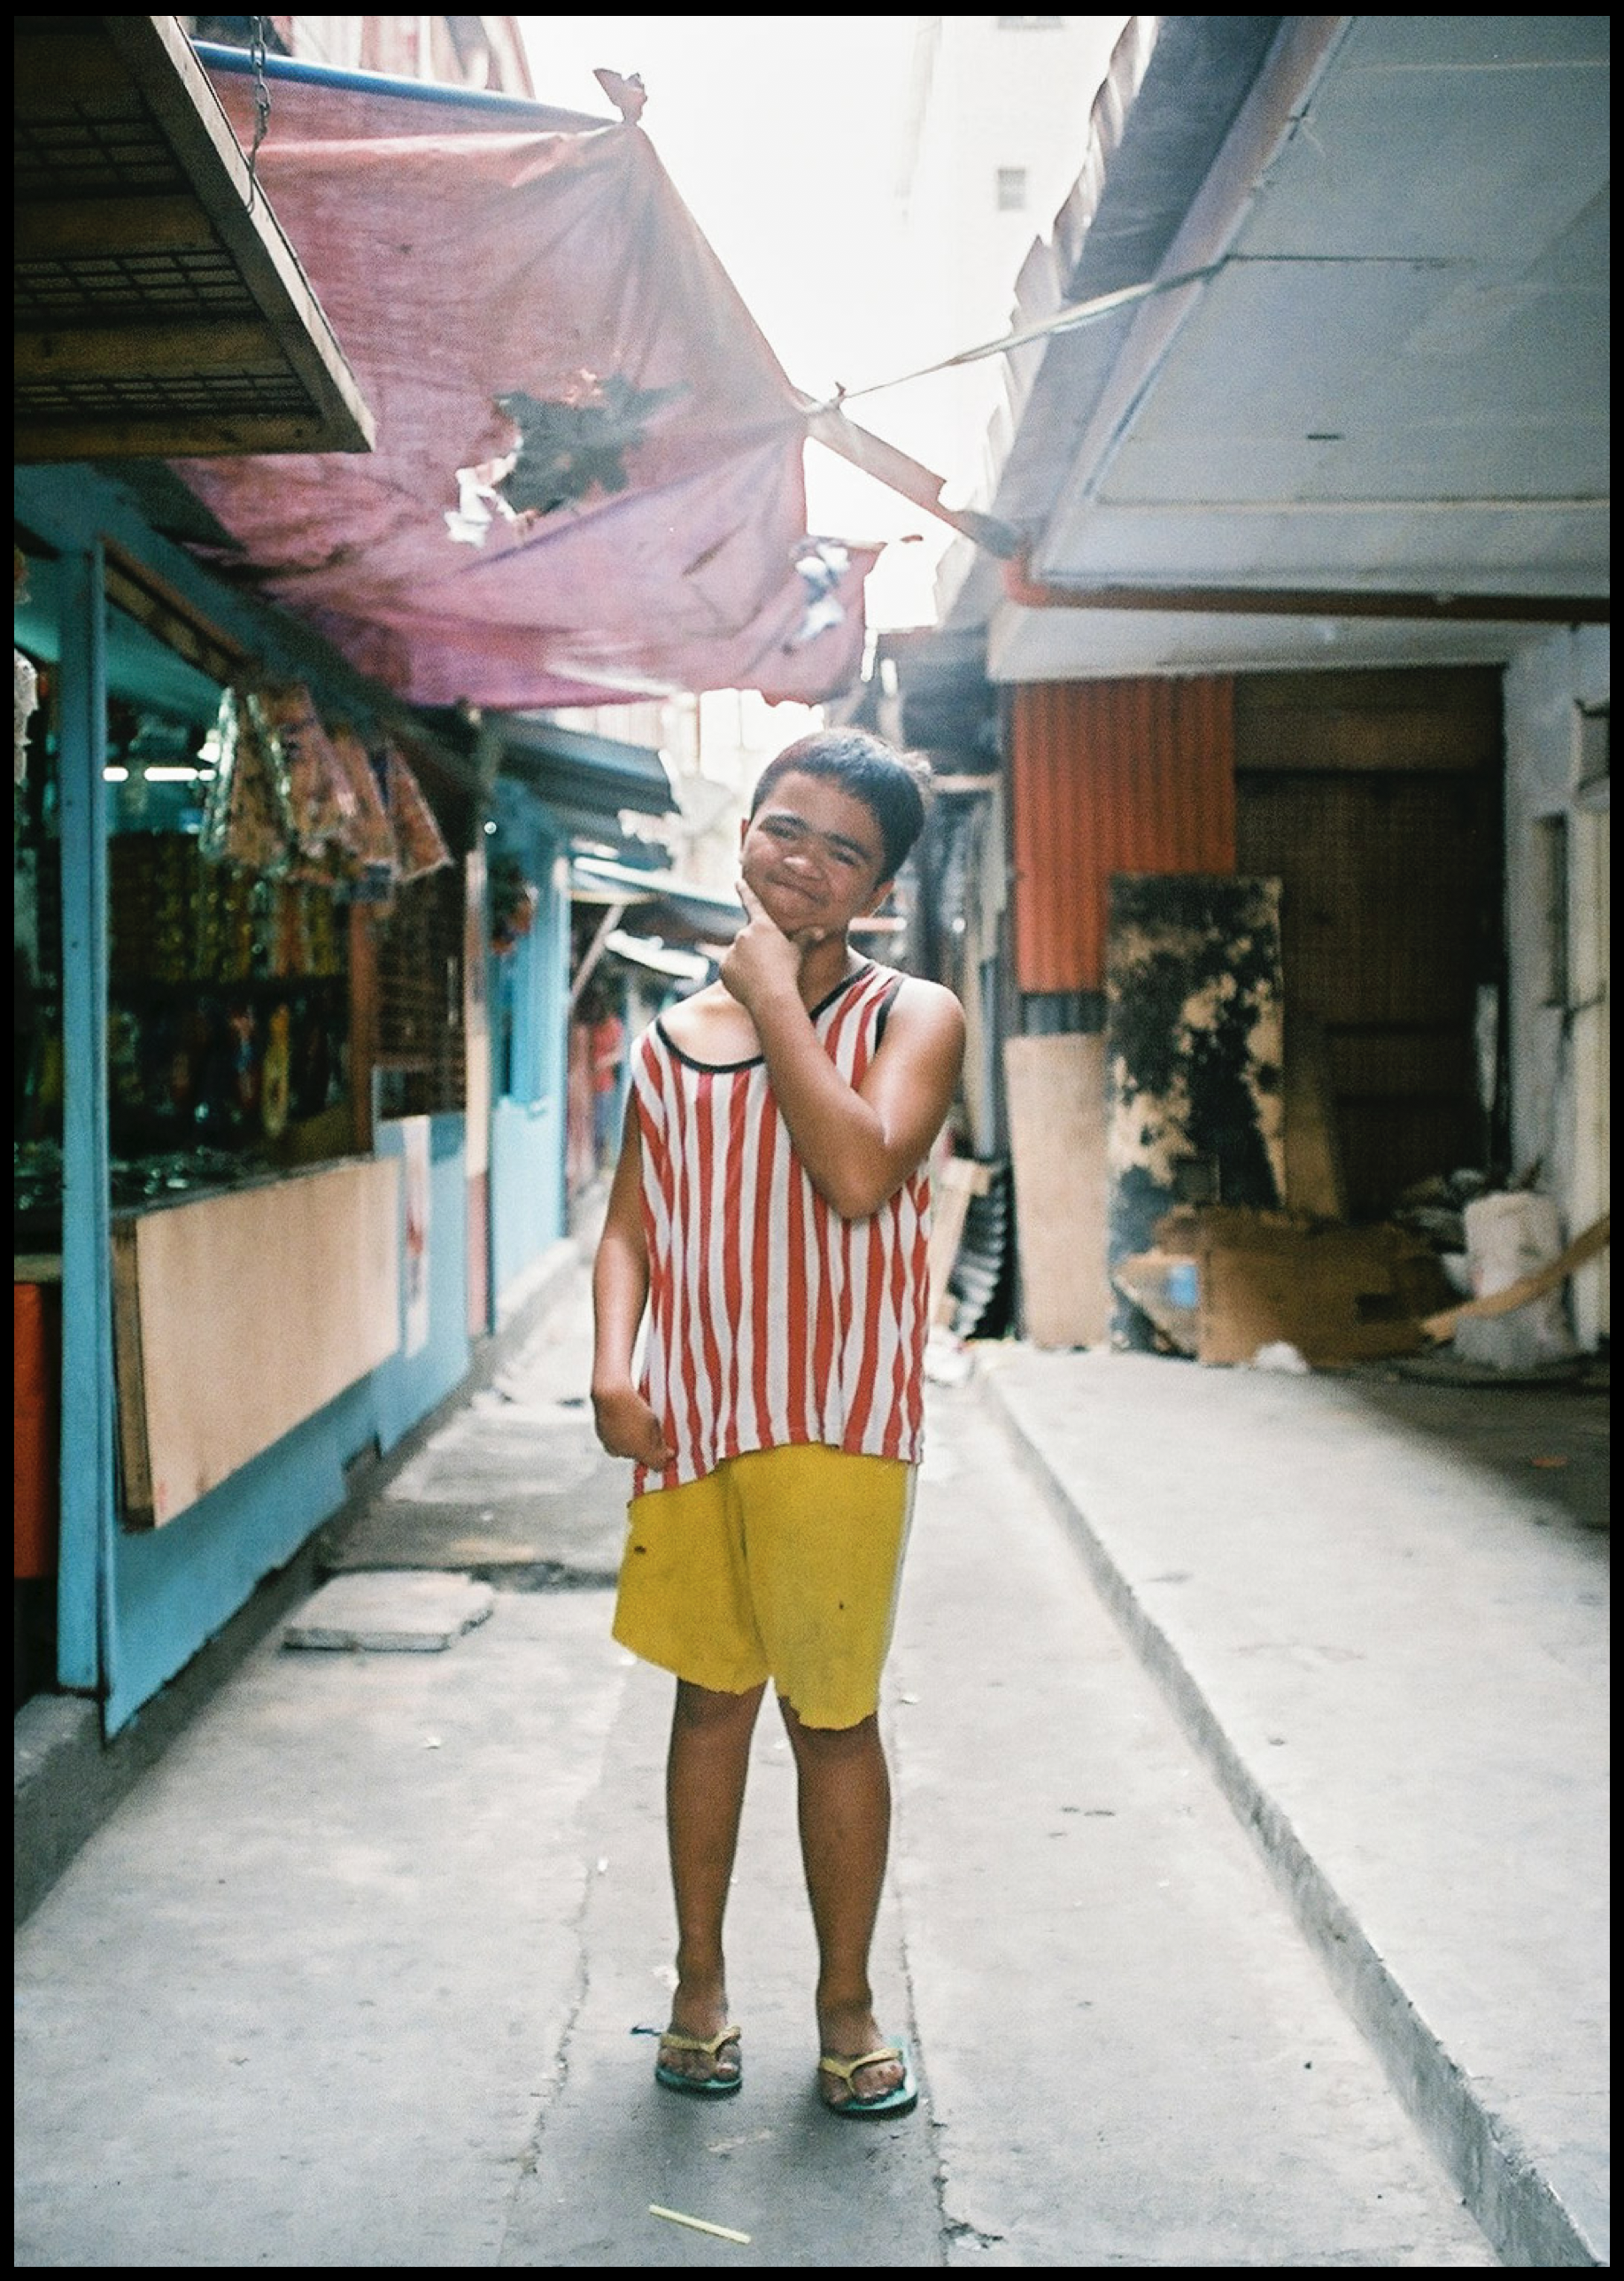 CoxCo_daily_life_Philippines_02 2019-08-12 0.33.46.png